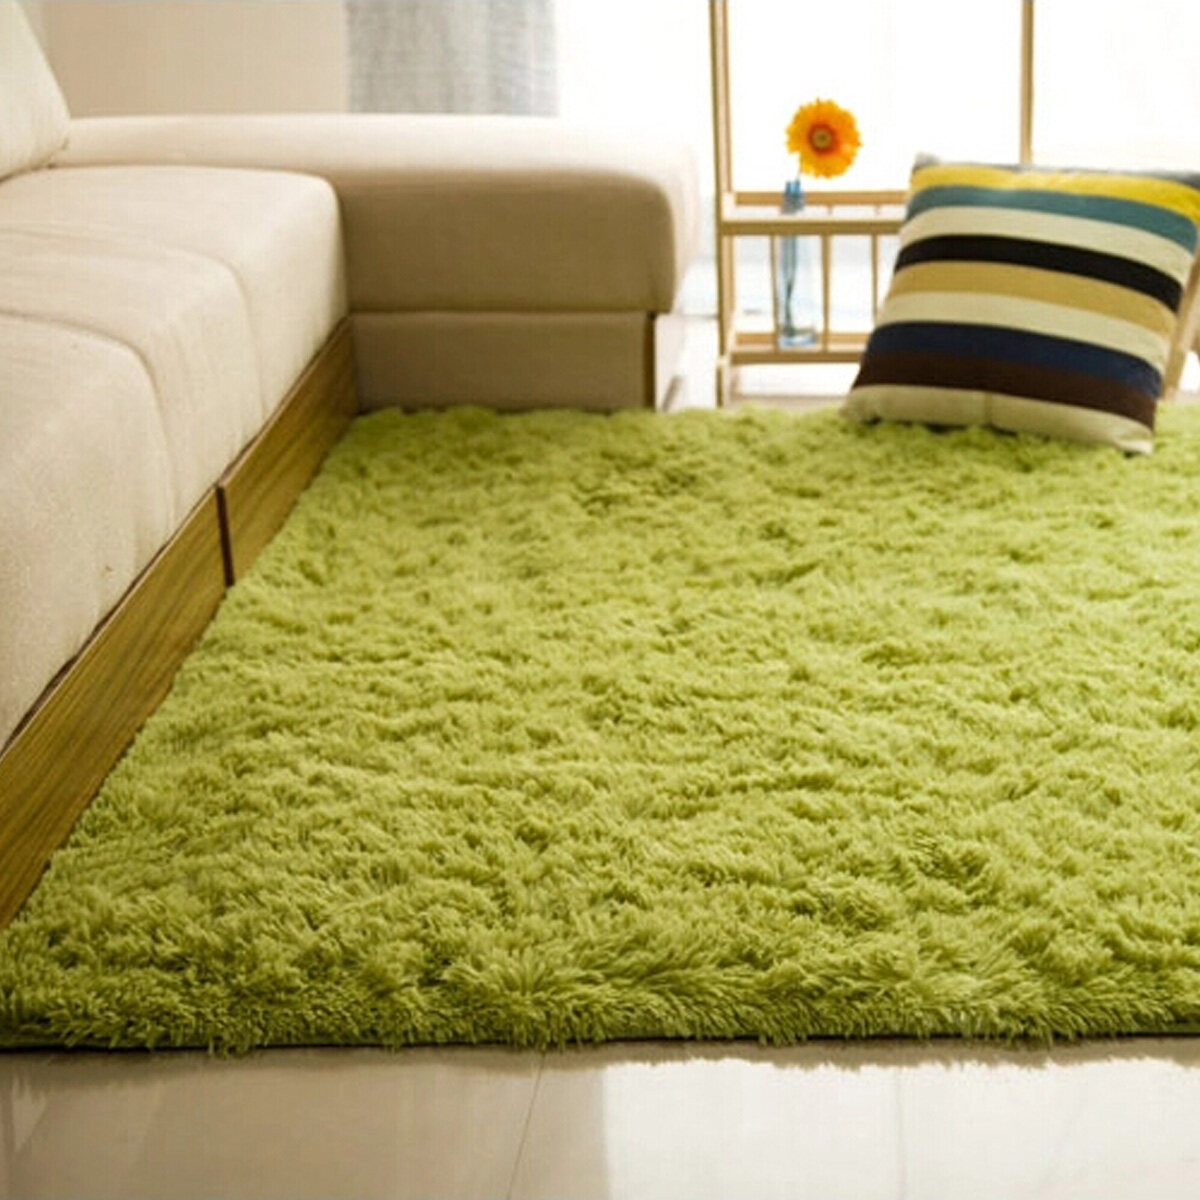 Generic Shaggy Anti-skid Carpets Rugs Floor Mat/Cover 80x120cm Grass Green